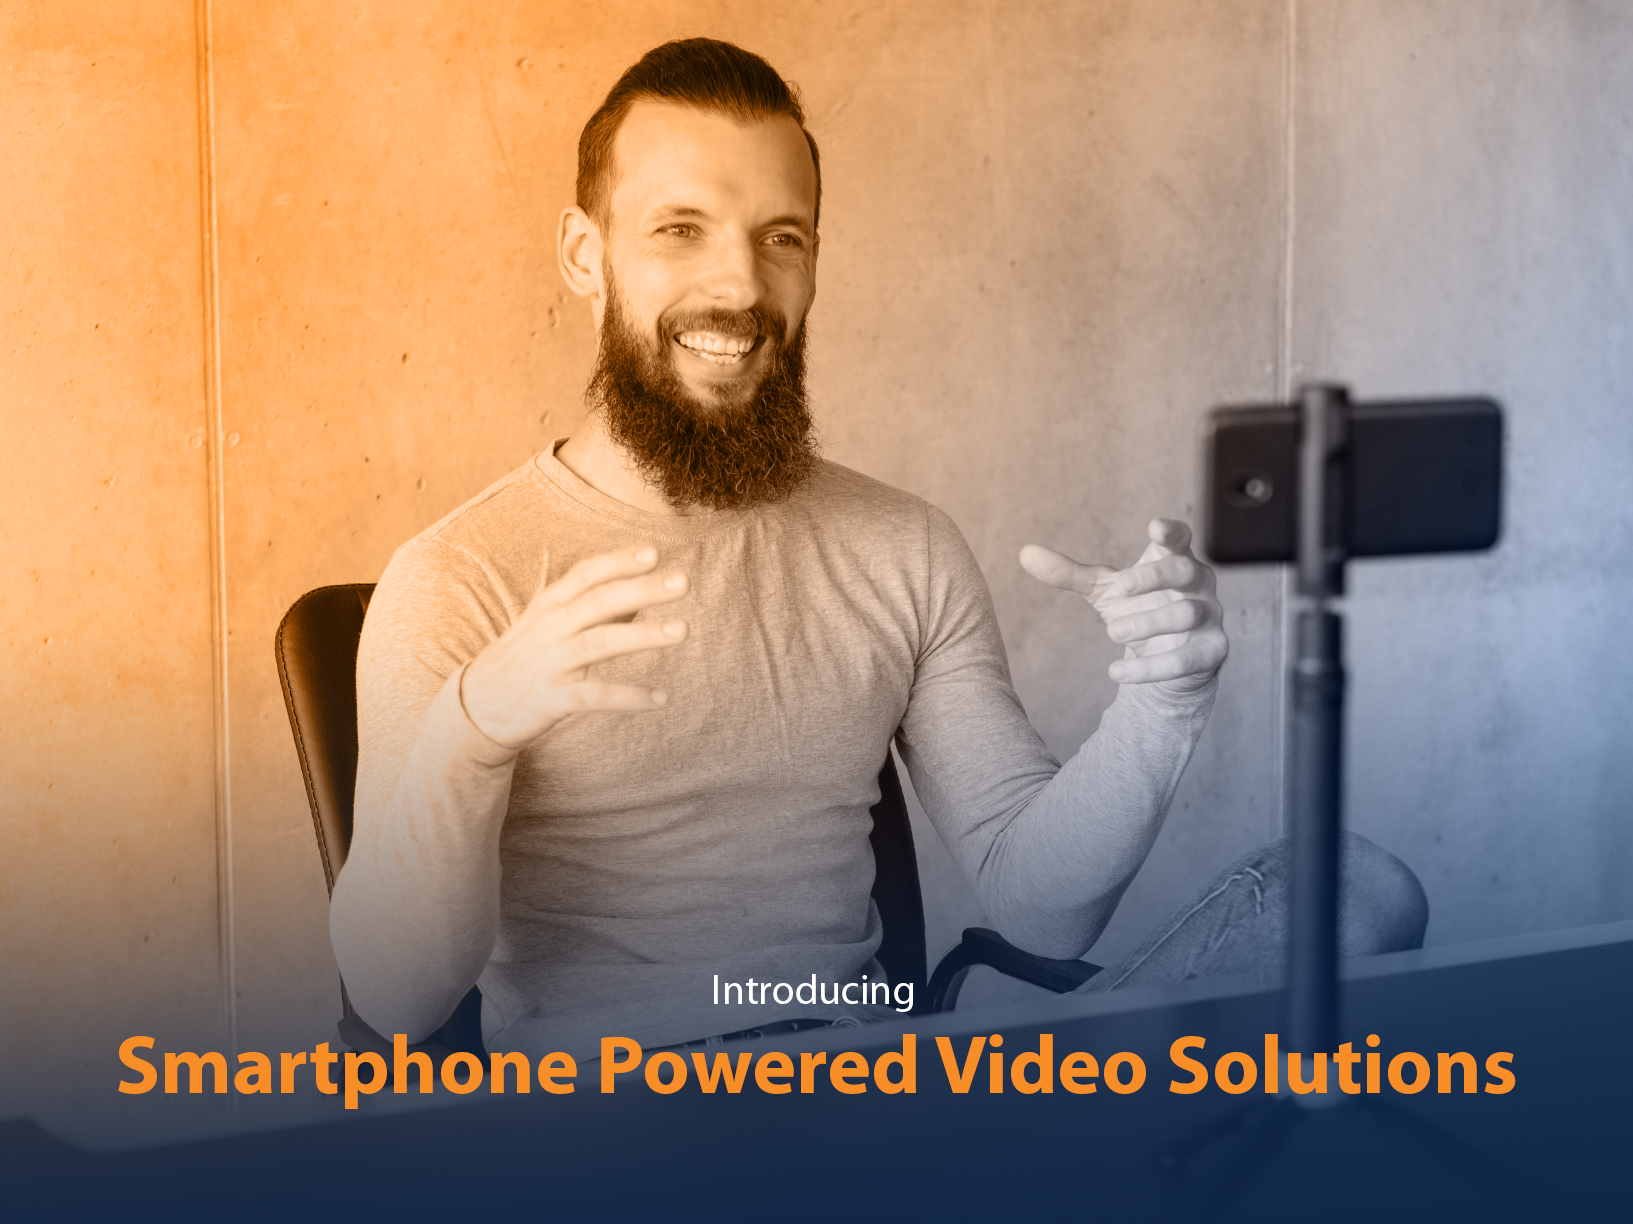 How Does Smartphone-Powered Video Production Work?